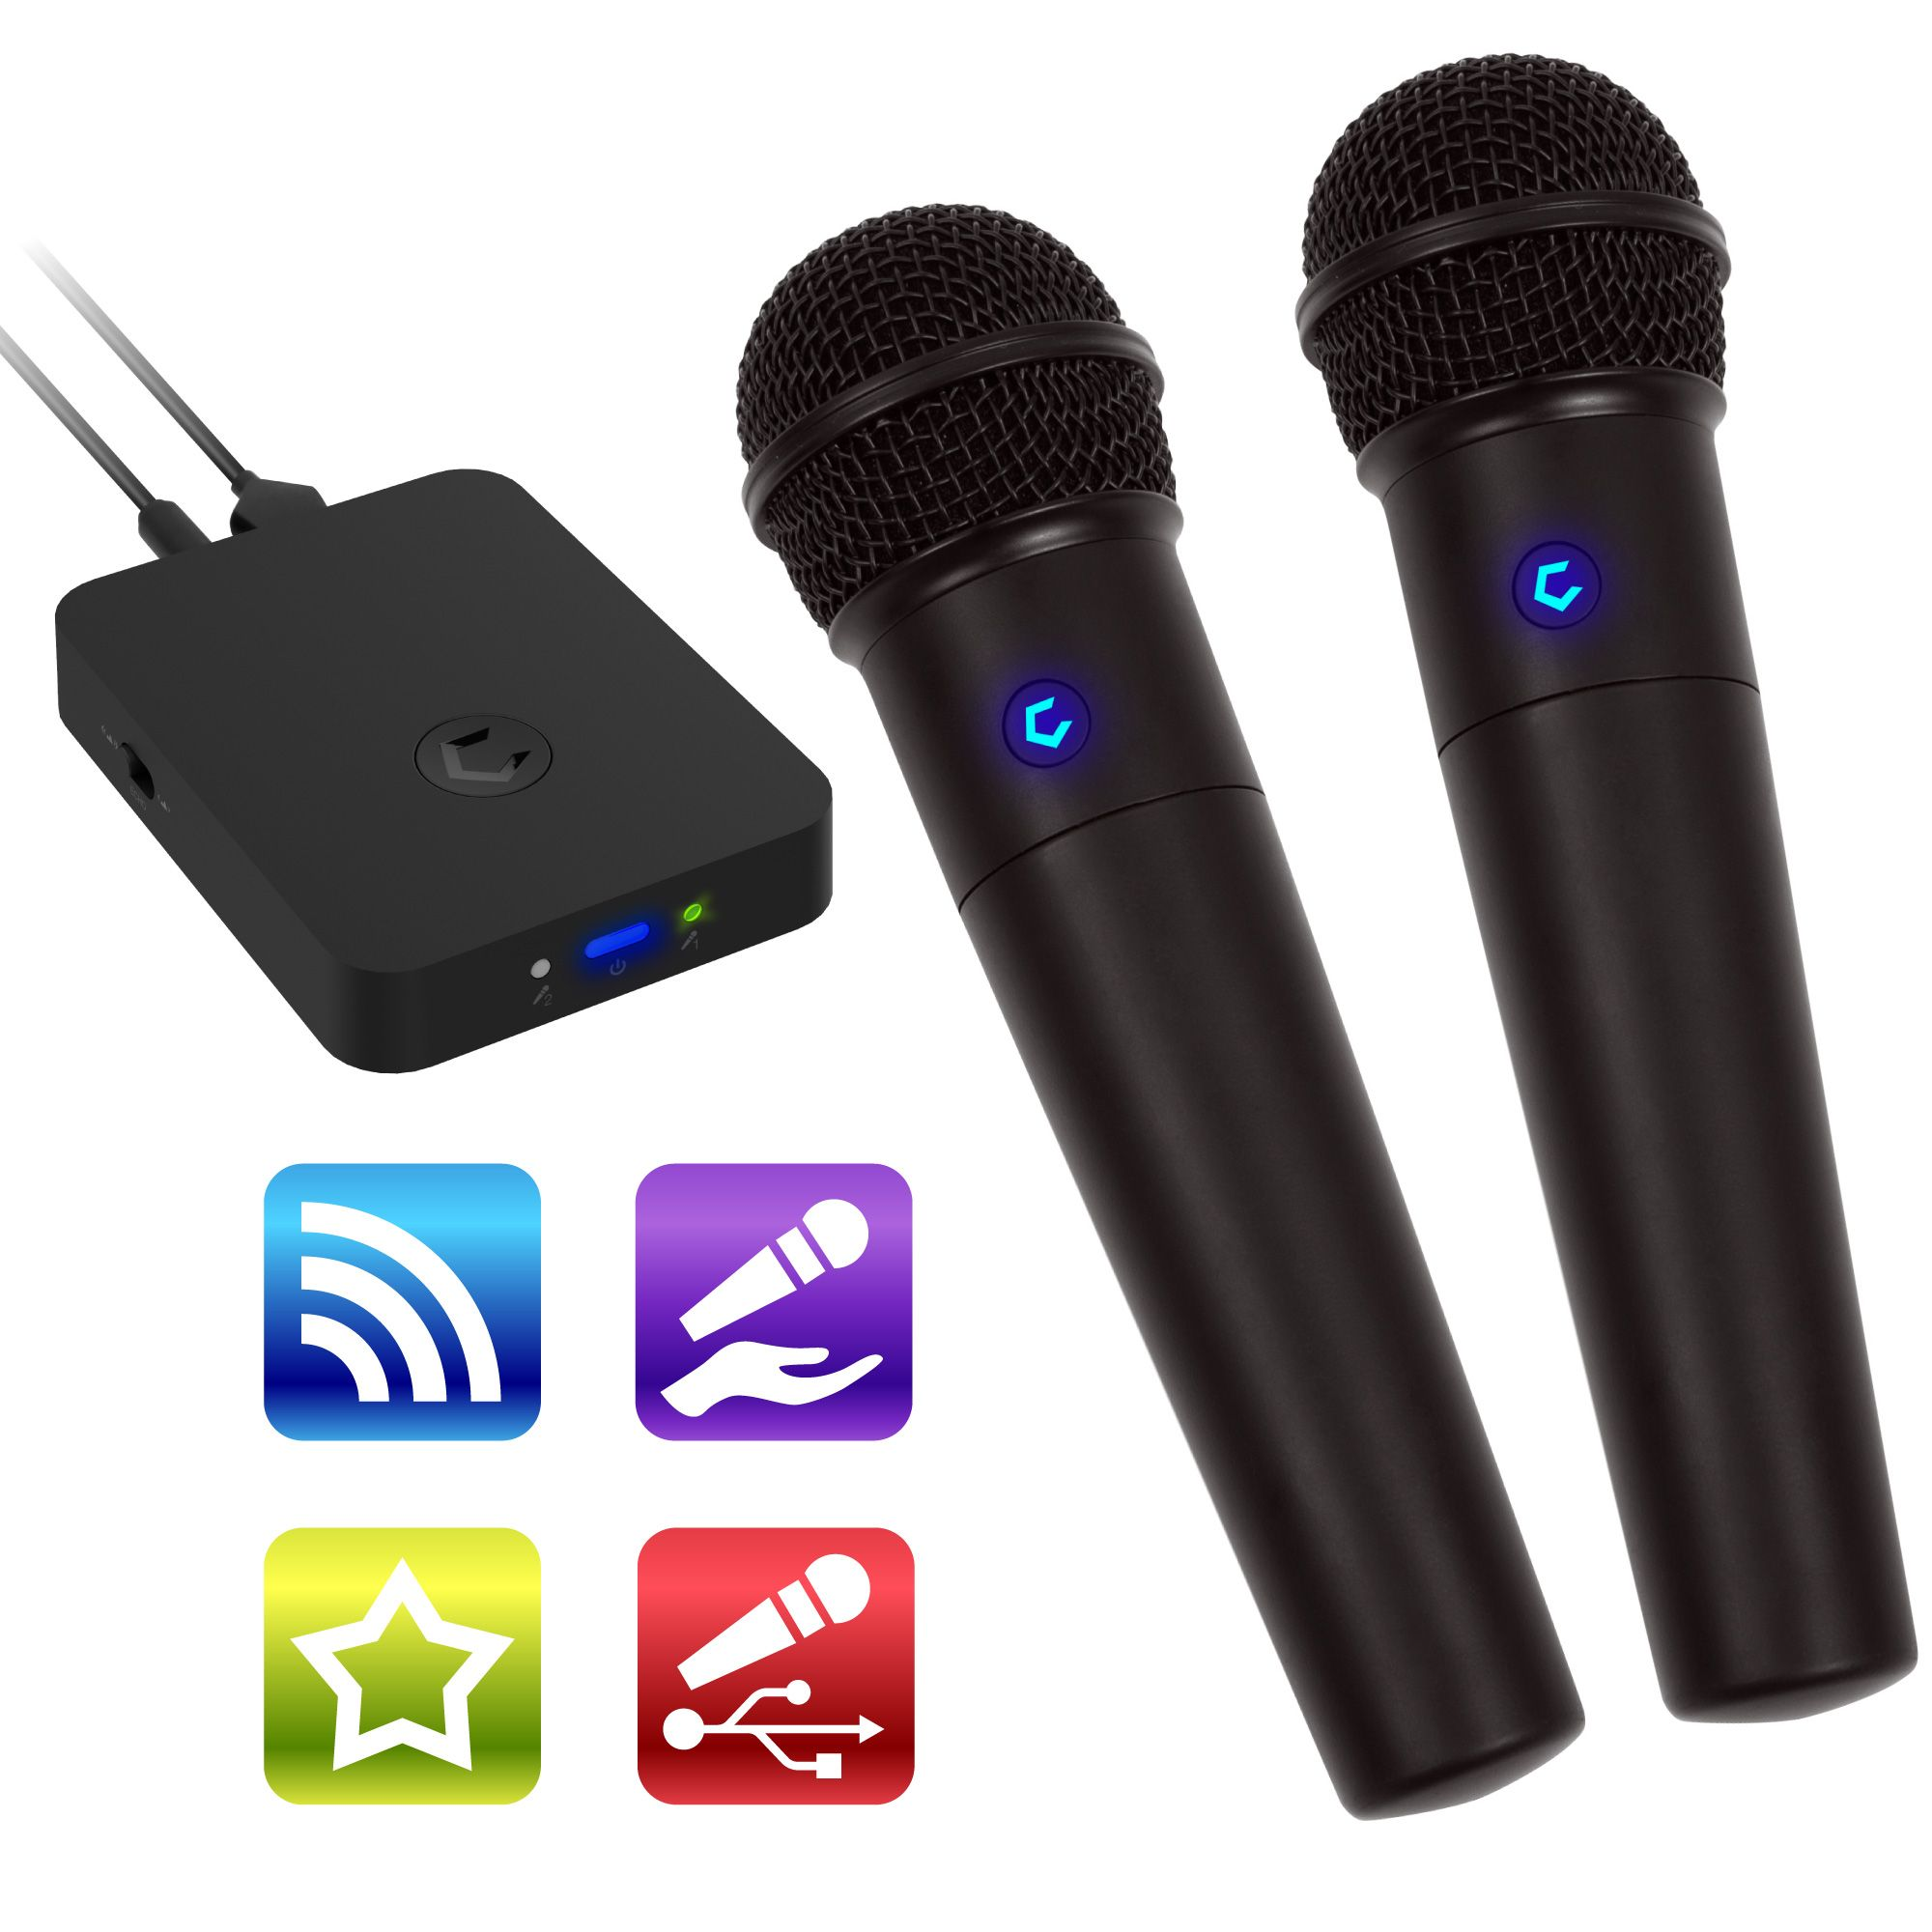 Cobble Pro Portable Bluetooth Karaoke System & 2-pc Wireless Microphone Singing Anywhere for Cell Phone iPhone iPad Tablet Laptop (Source Vocal Removal Technology)(Echo Sound Effect)(USB Rechargeable)